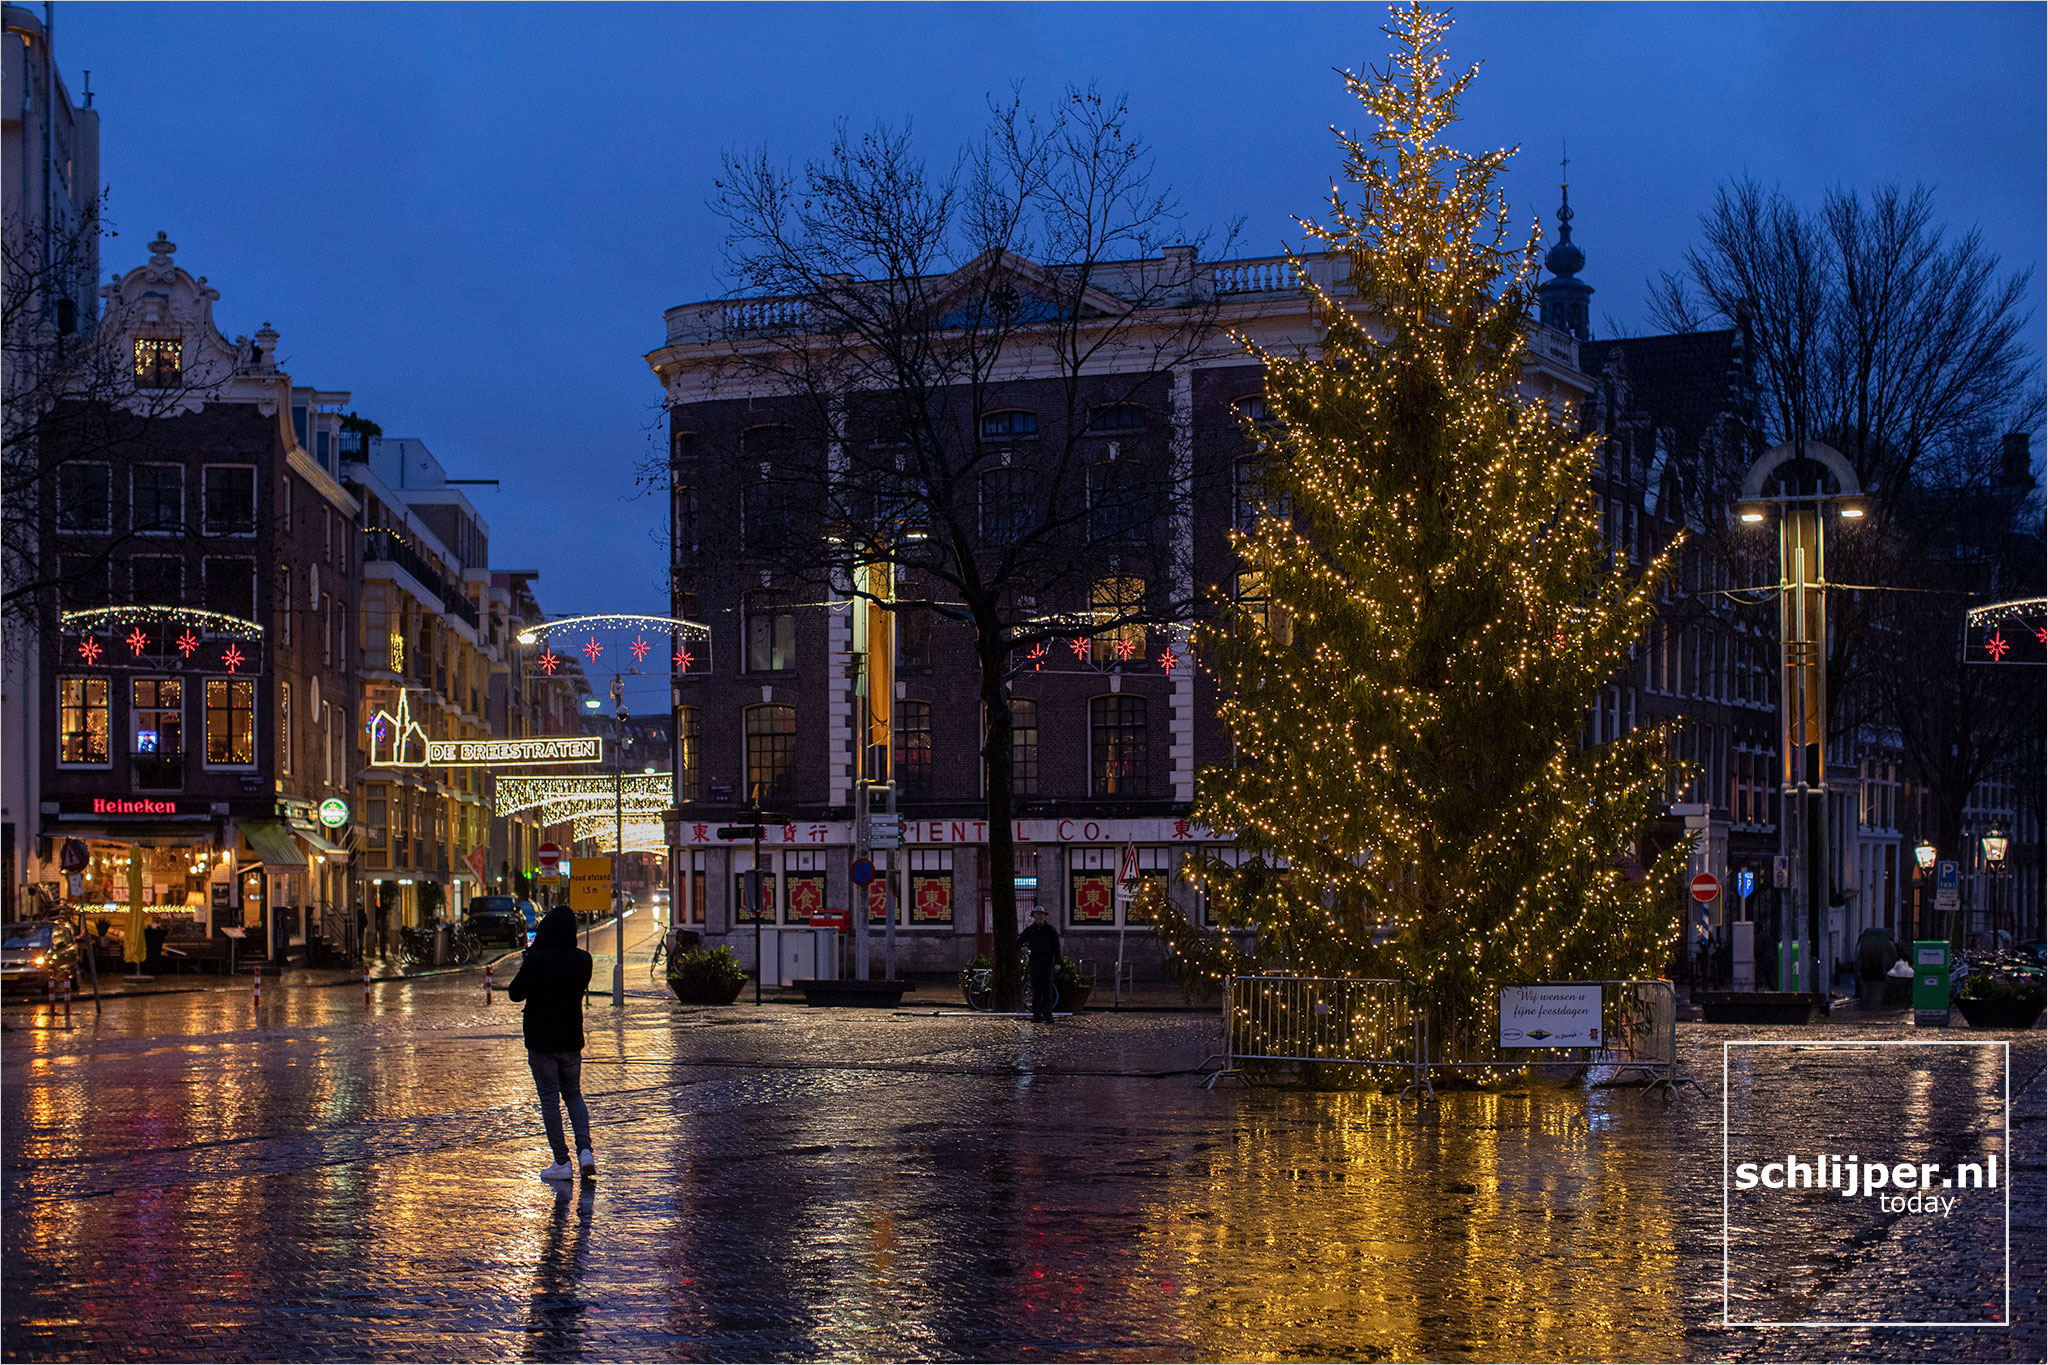 The Netherlands, Amsterdam, 27 december 2020